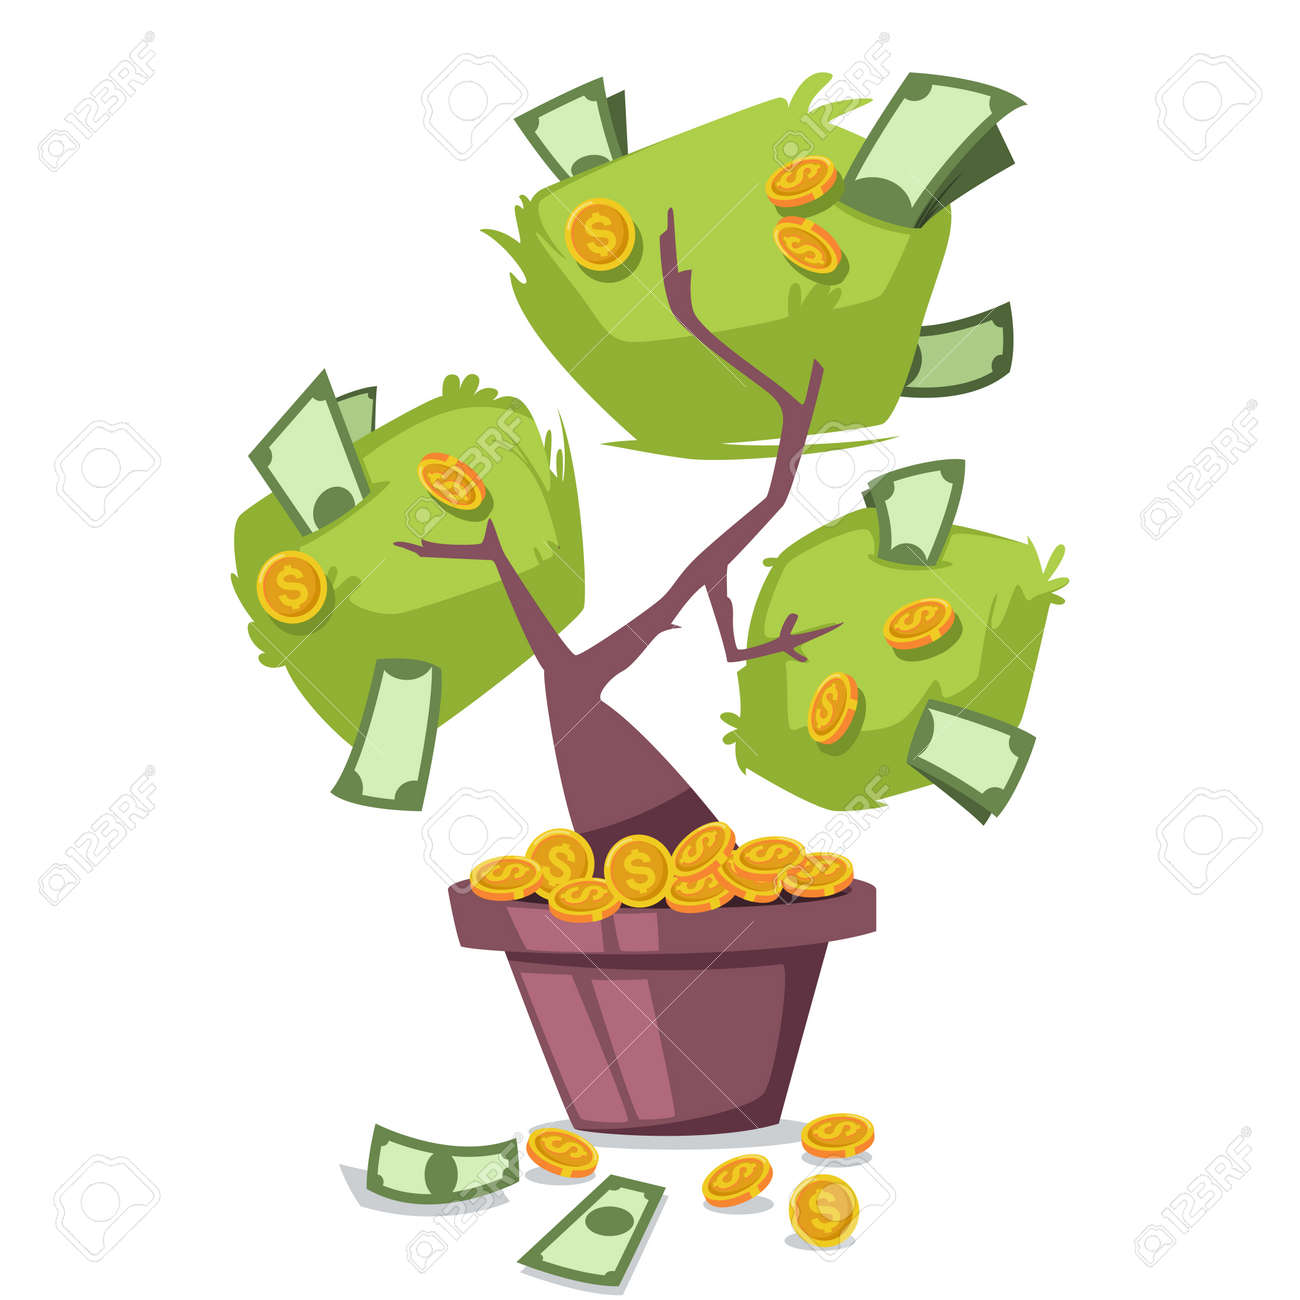 Money Tree With Dollars And Gold Coins Vector Cartoon Icon Isolated Royalty Free Cliparts Vectors And Stock Illustration Image 91031629 Cartoon money tree illustration on white background. money tree with dollars and gold coins vector cartoon icon isolated